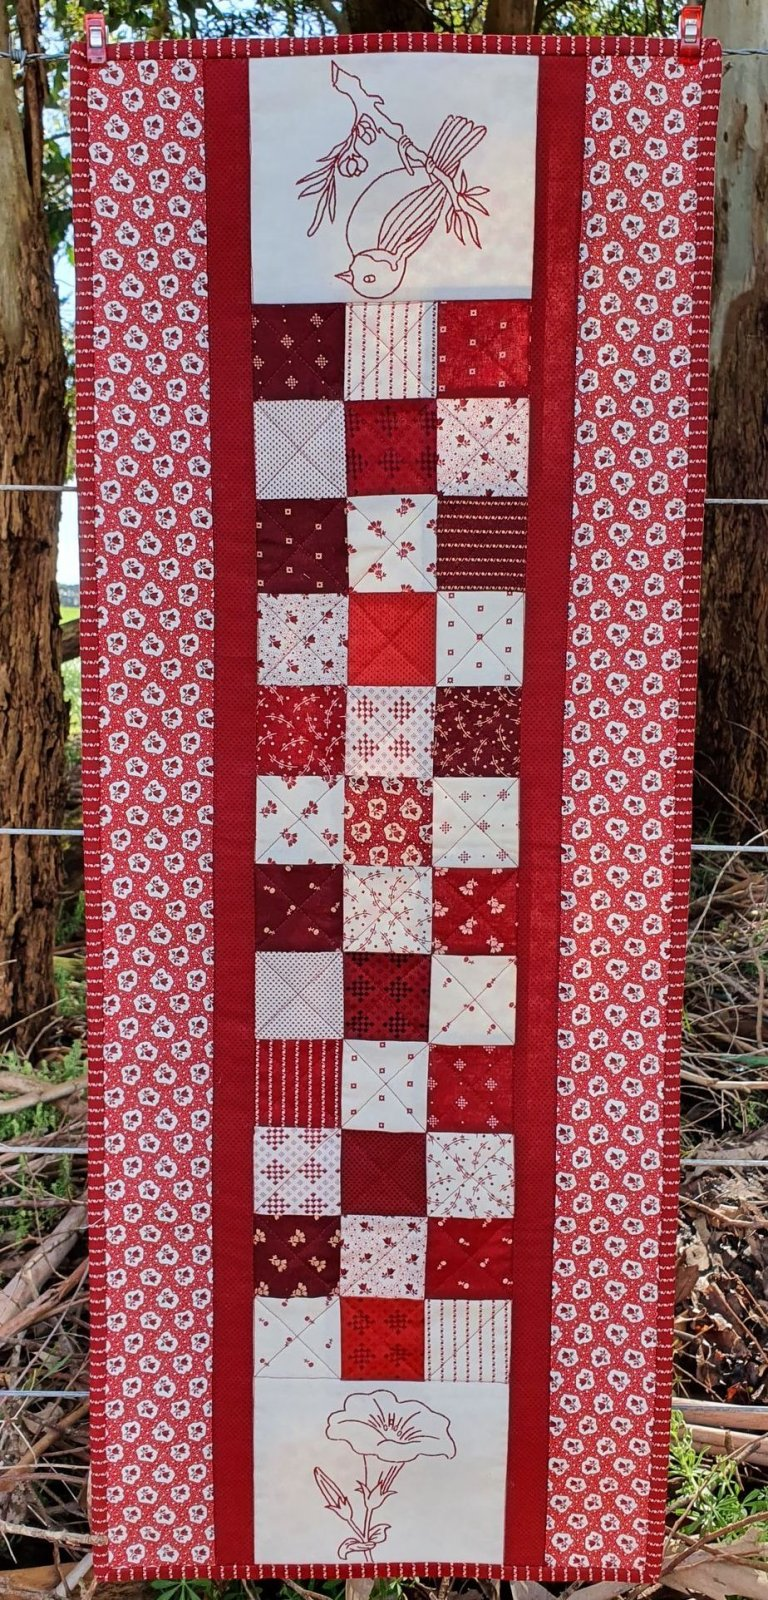 Let's Gather Table Runner kit